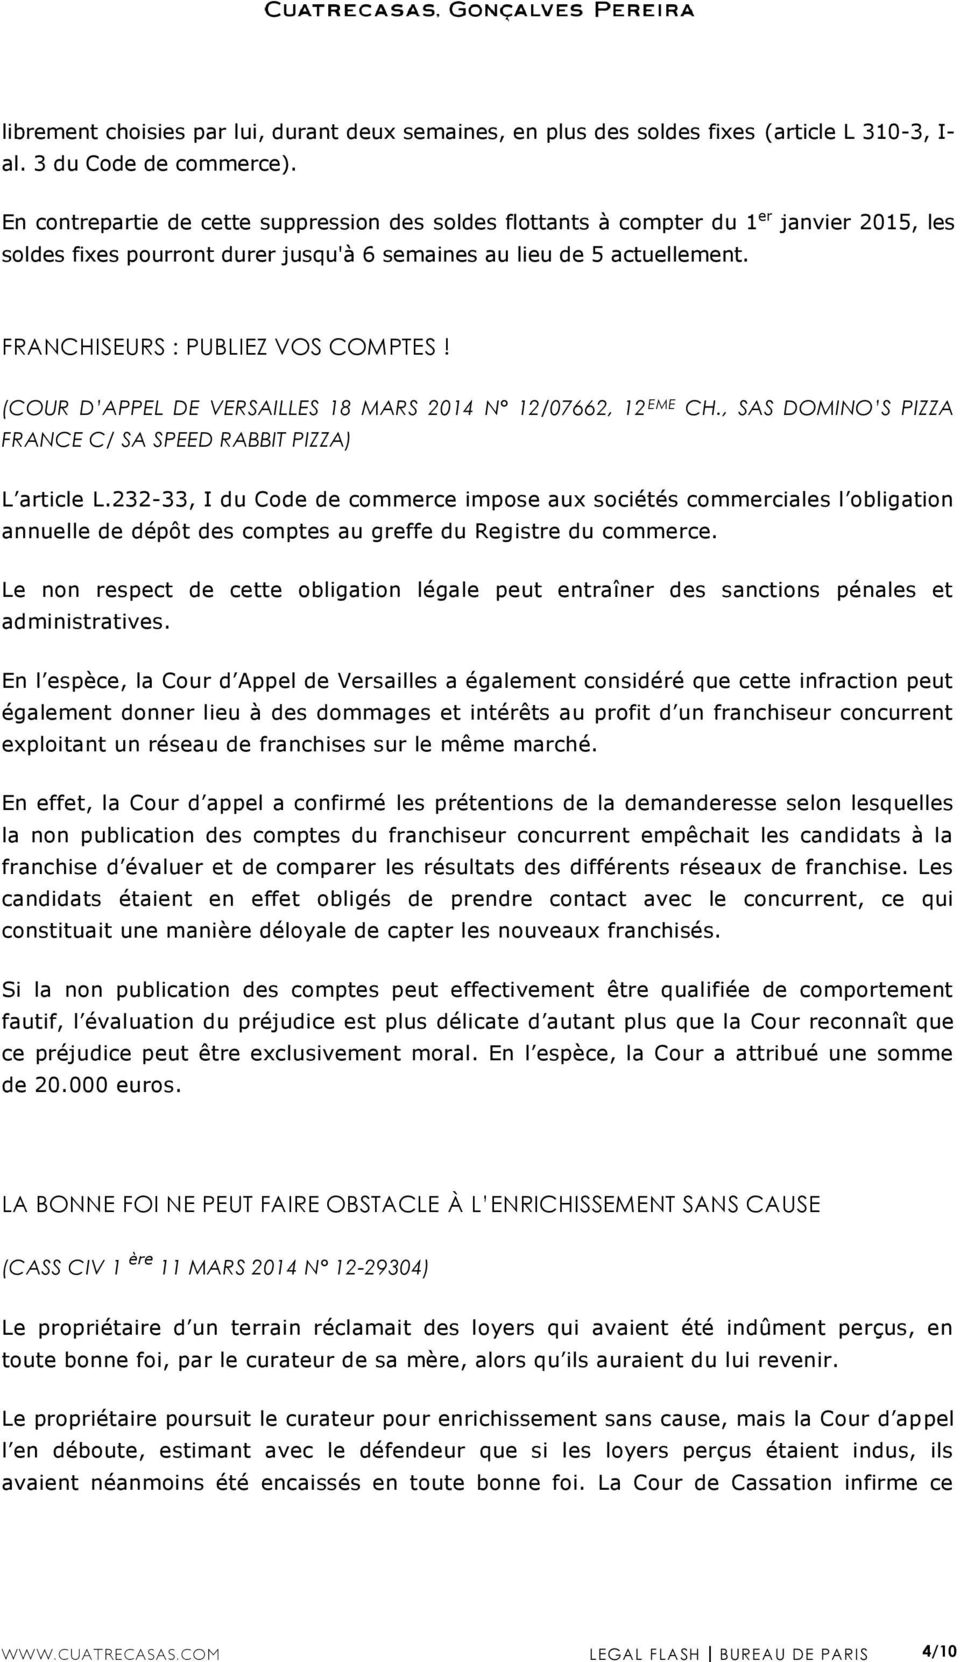 FRANCHISEURS : PUBLIEZ VOS COMPTES! (COUR D APPEL DE VERSAILLES 18 MARS 2014 N 12/07662, 12 EME CH., SAS DOMINO S PIZZA FRANCE C/ SA SPEED RABBIT PIZZA) L article L.